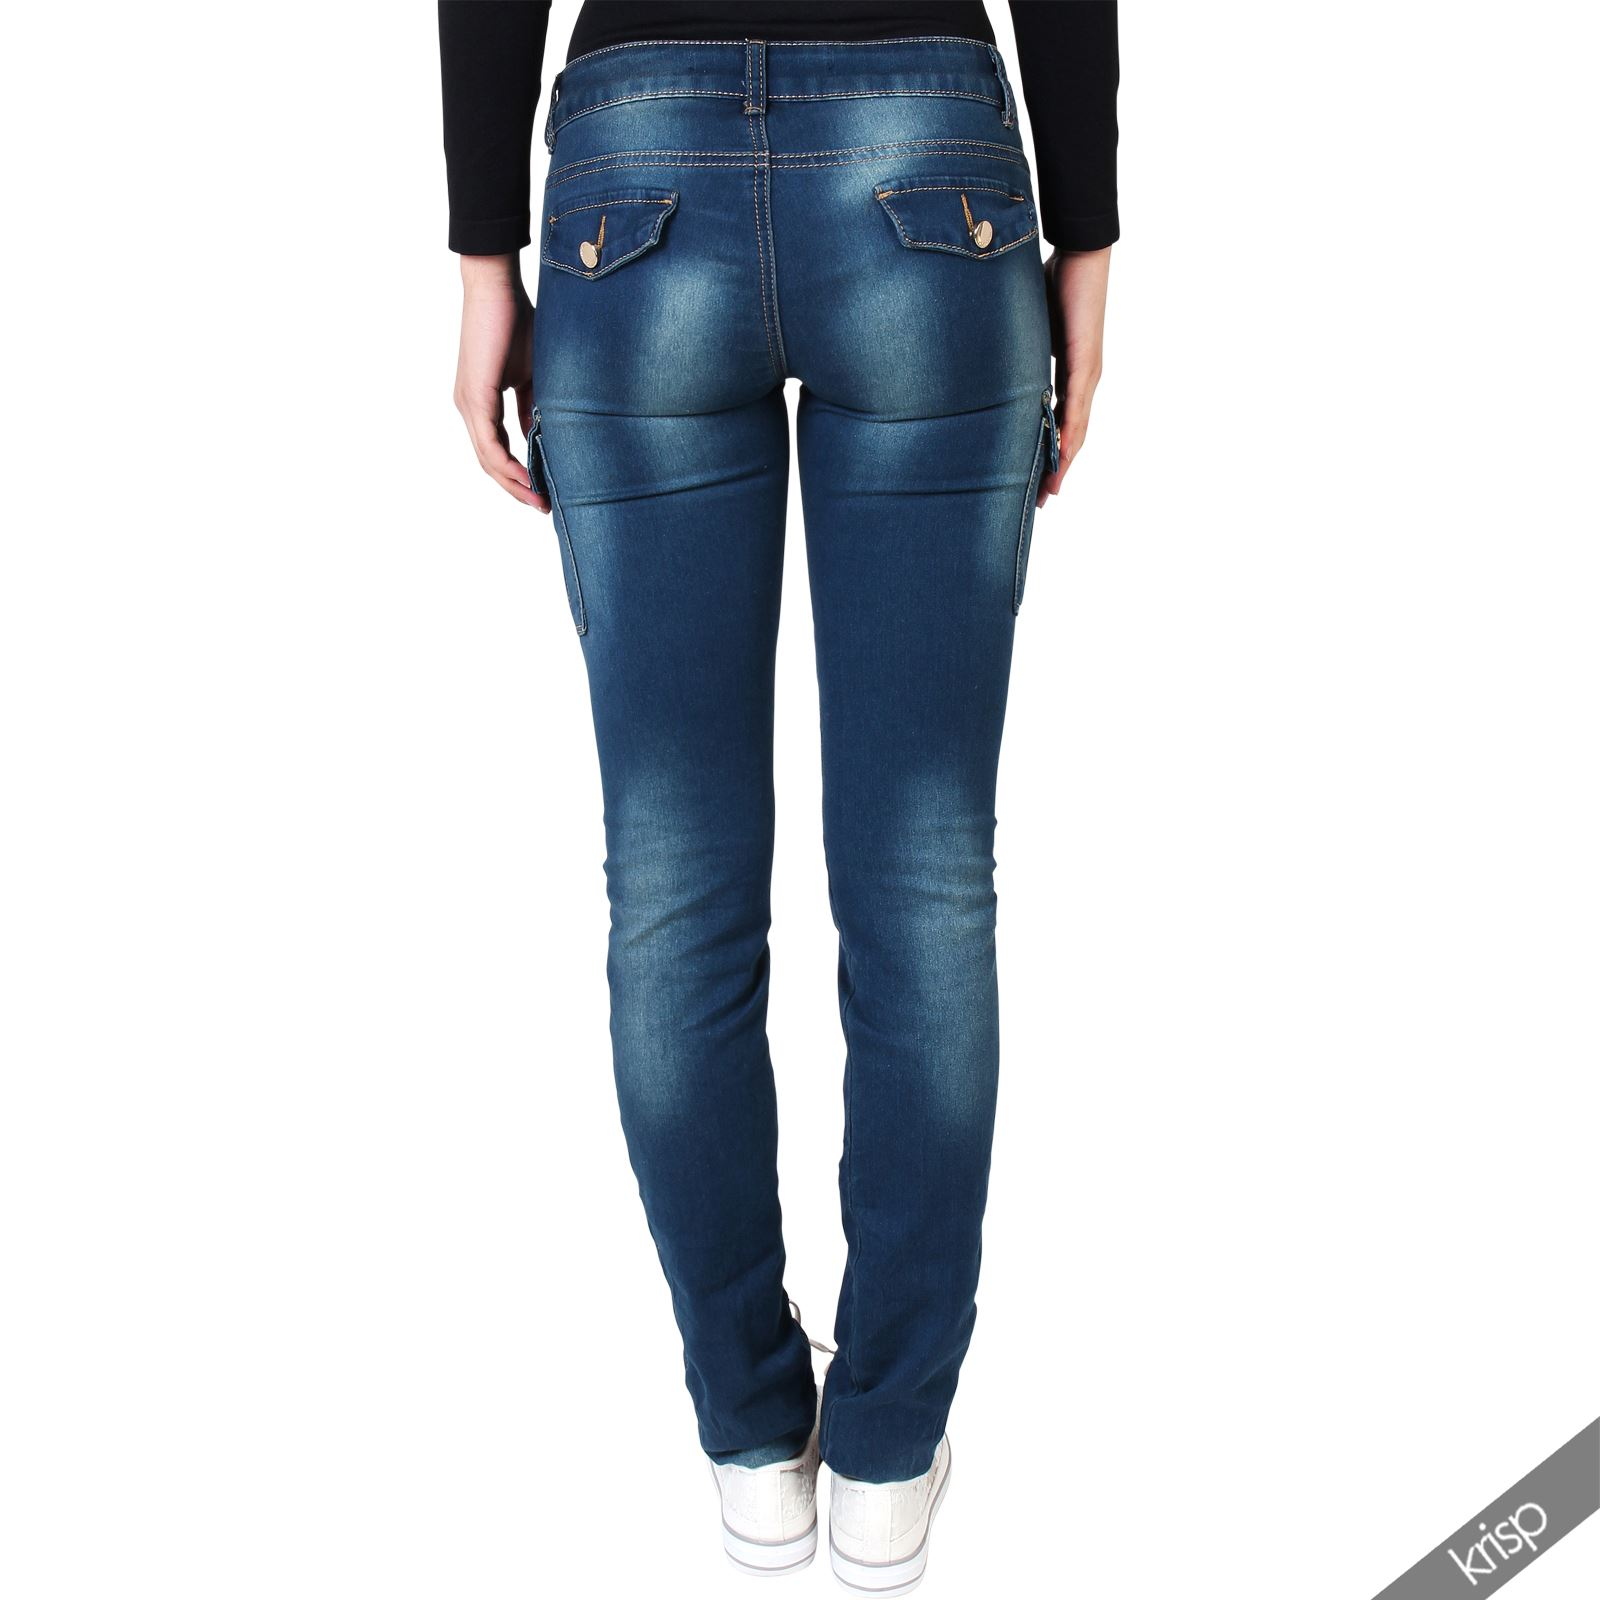 Buy low price, high quality ladies pencil jeans with worldwide shipping on rabbetedh.ga